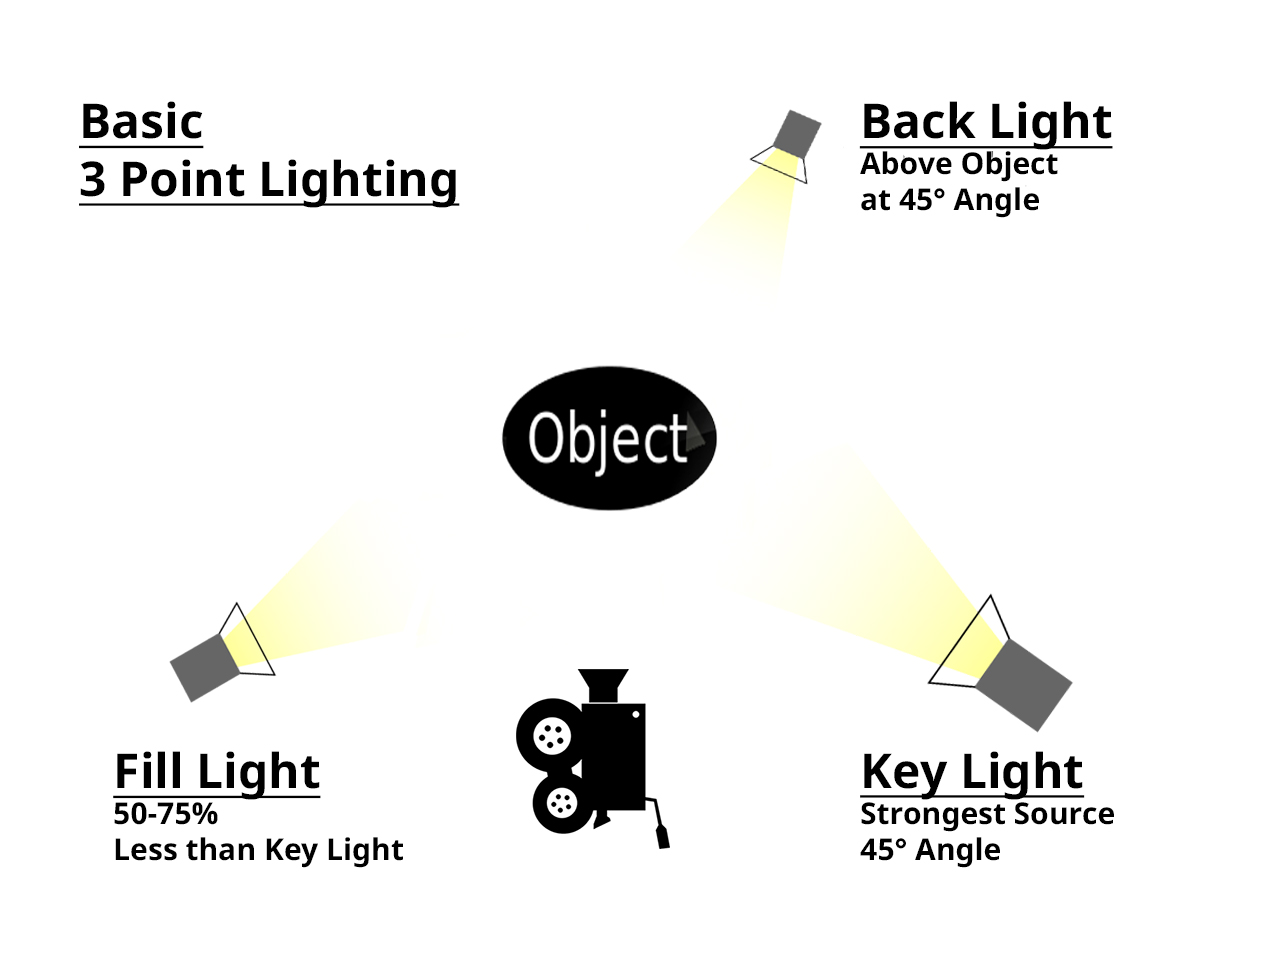 Diagram showing 3 point lighting arrangement.